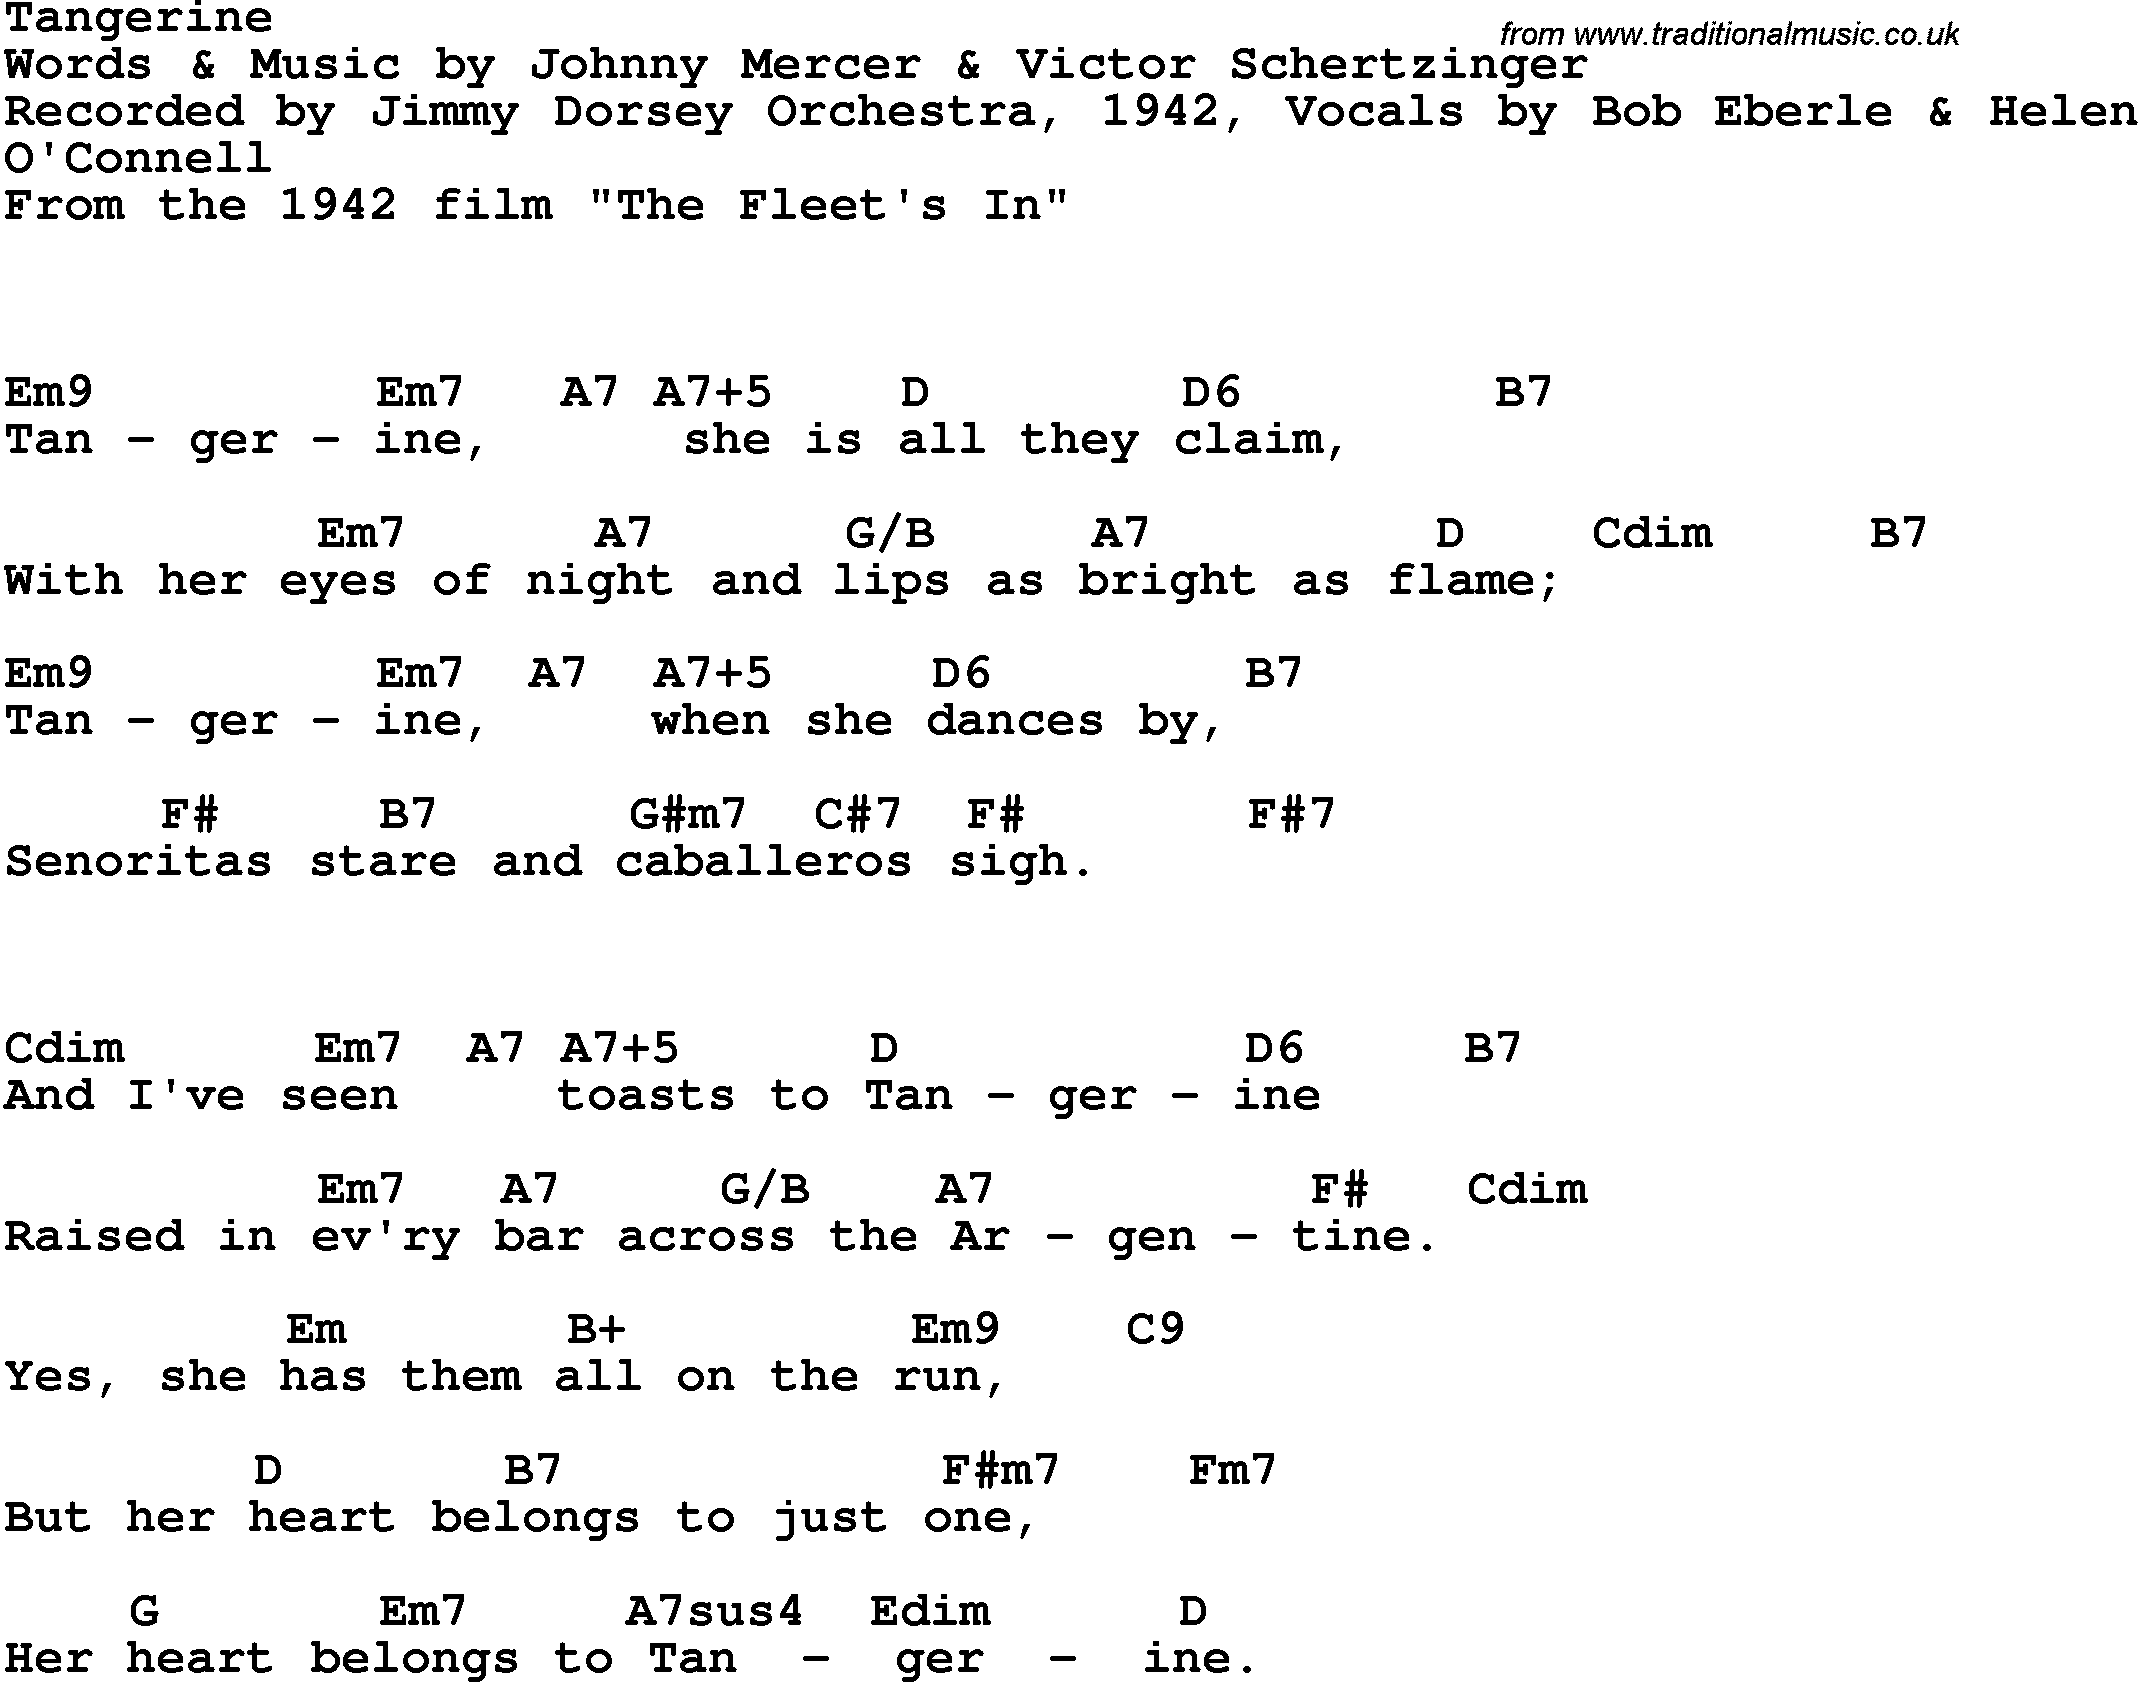 Song Lyrics With Guitar Chords For Tangerine Jimmy Dorsey 1942